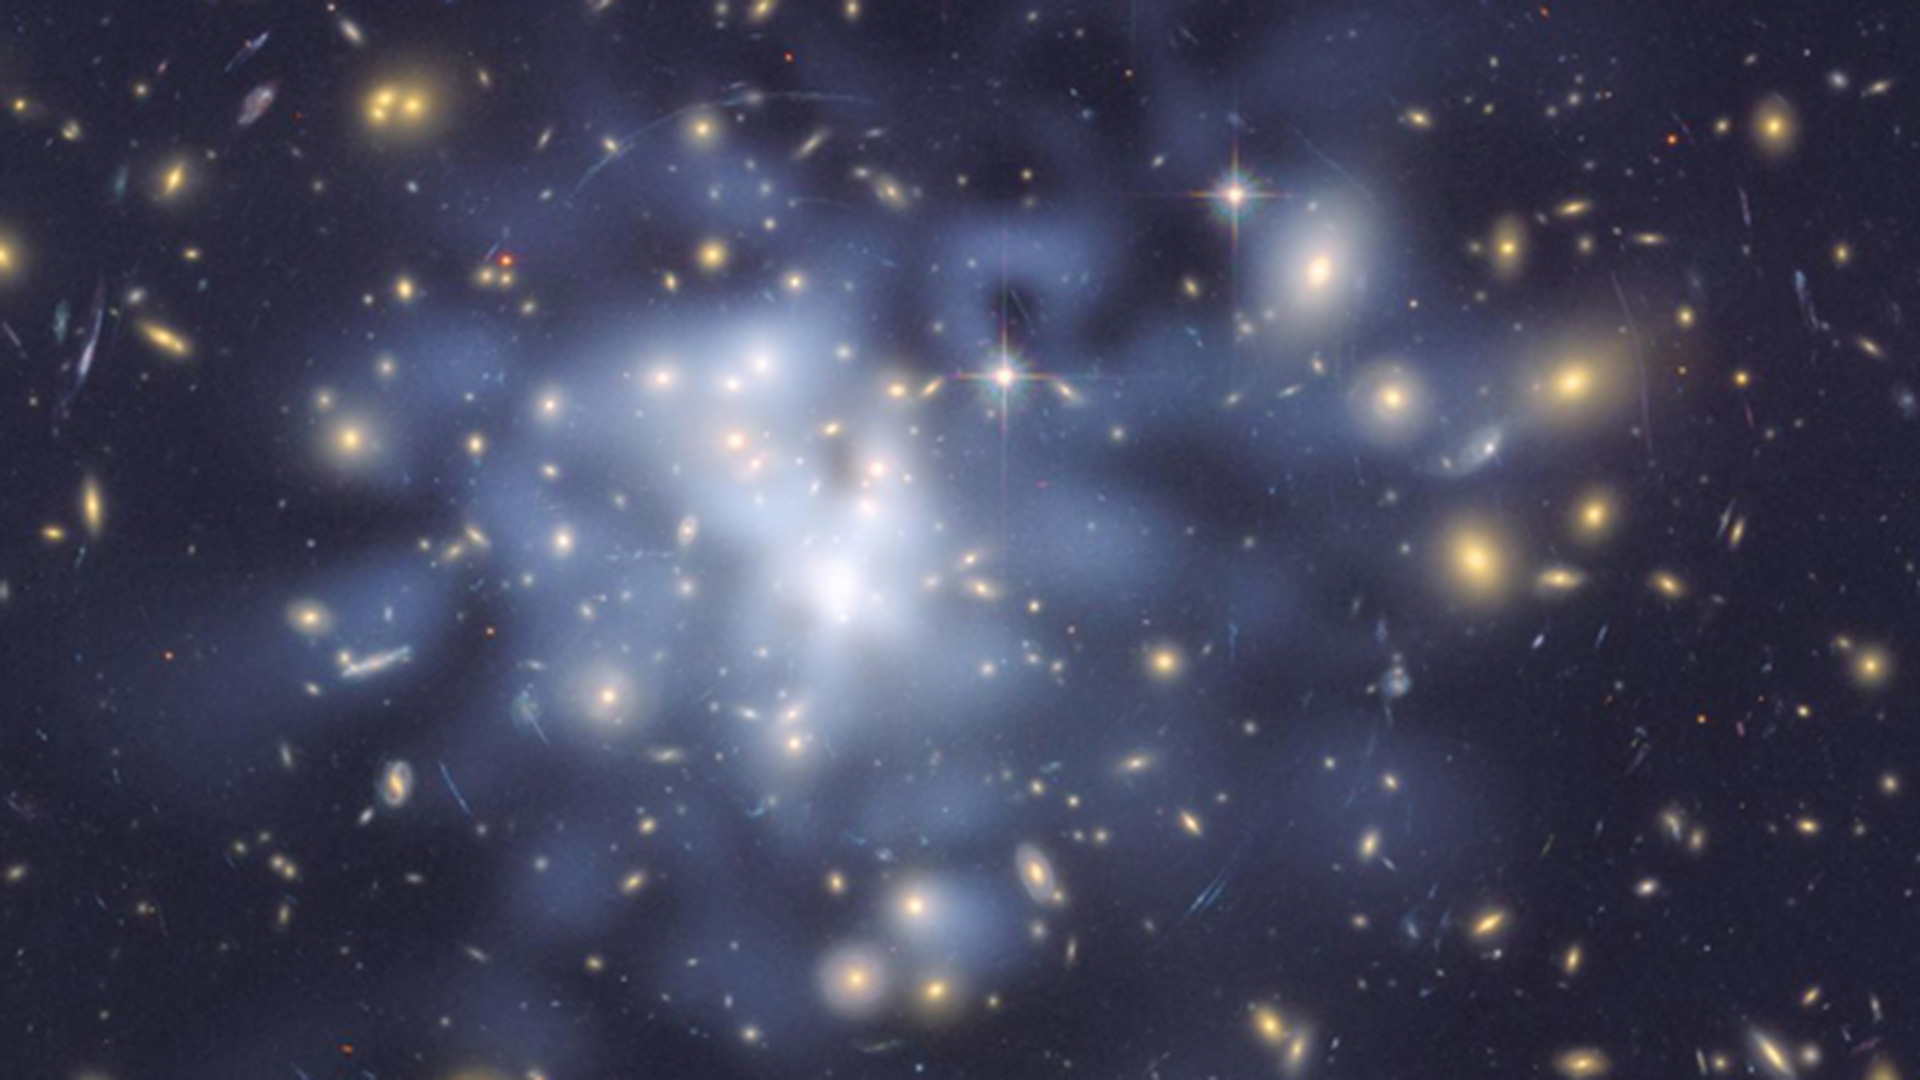 Scientists theorize dark matter exists in the space between galaxies.